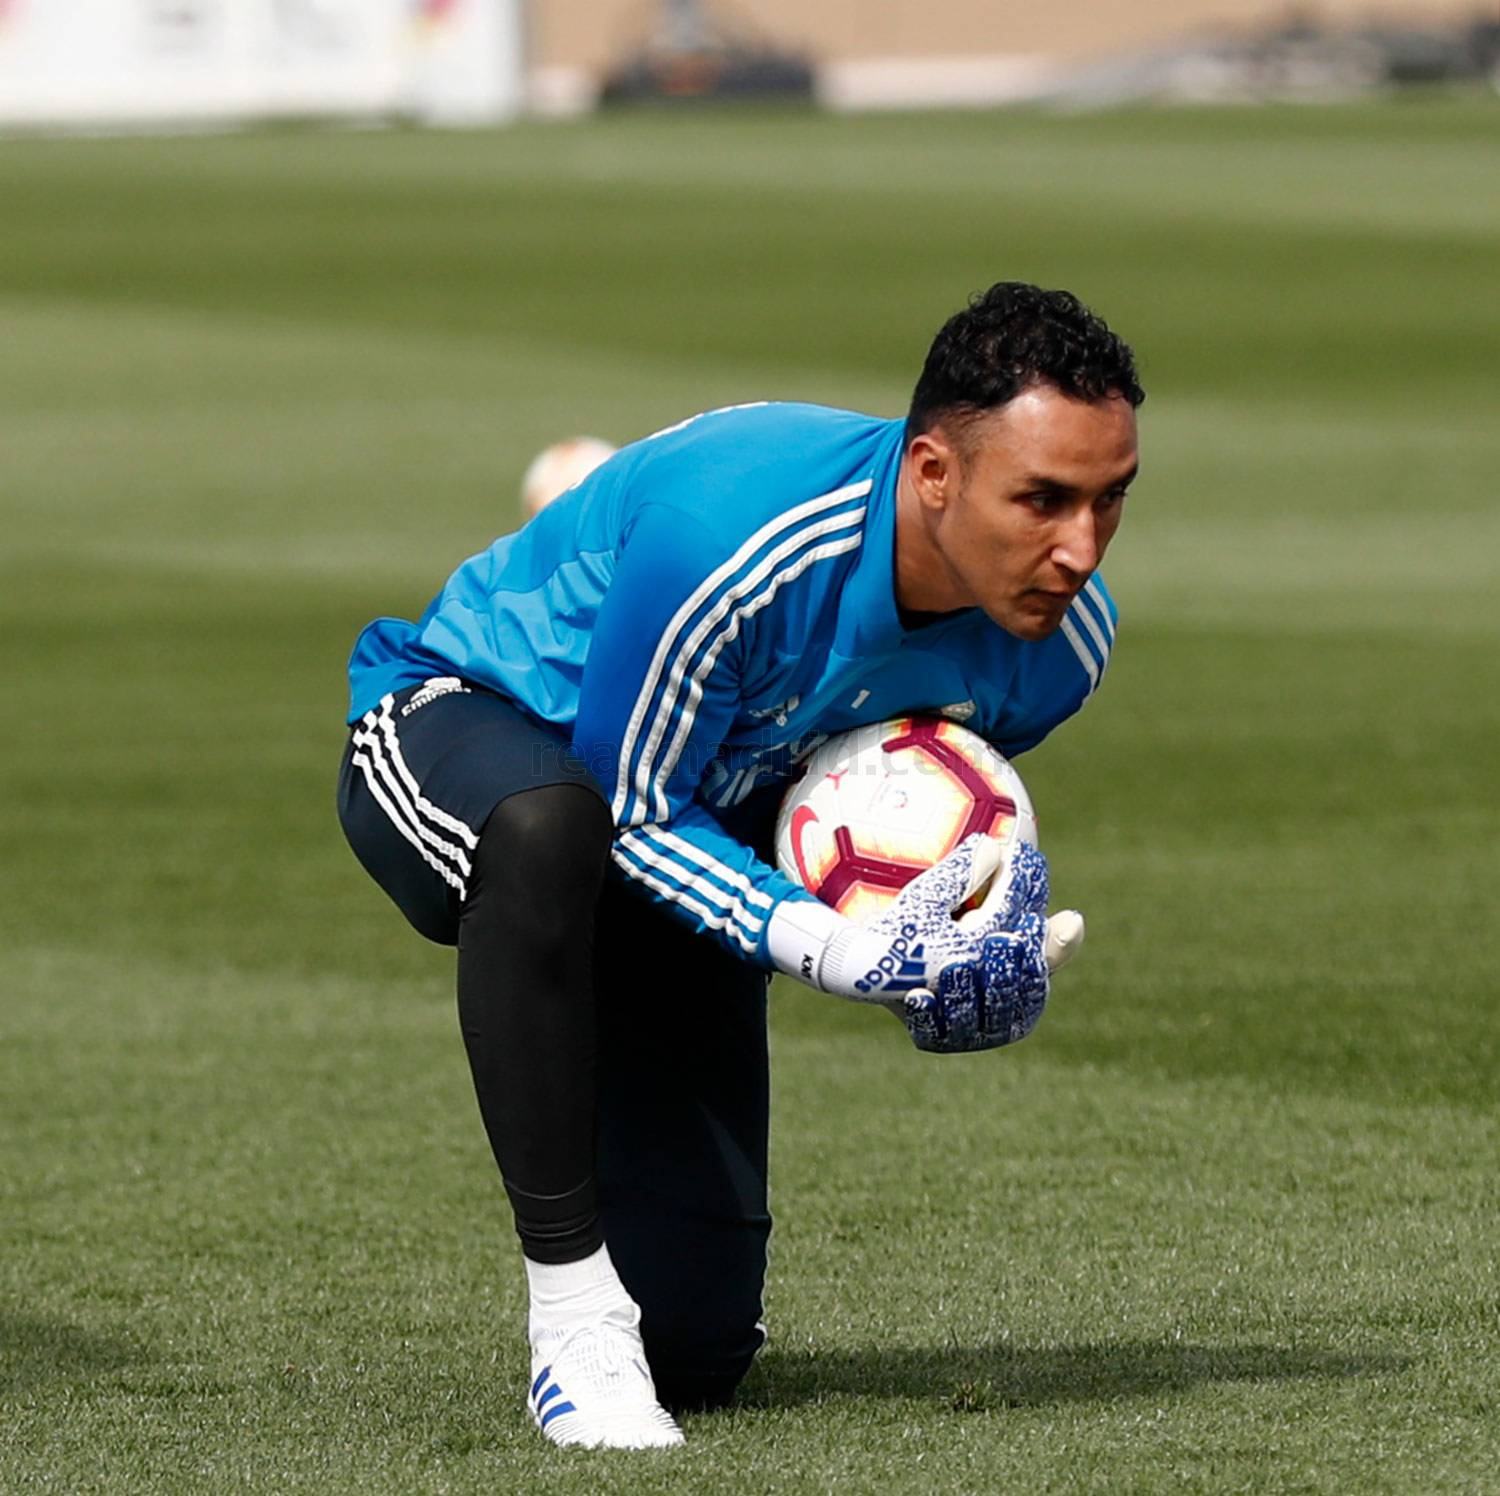 Real Madrid - Entrenamiento del Real Madrid - 14-04-2019